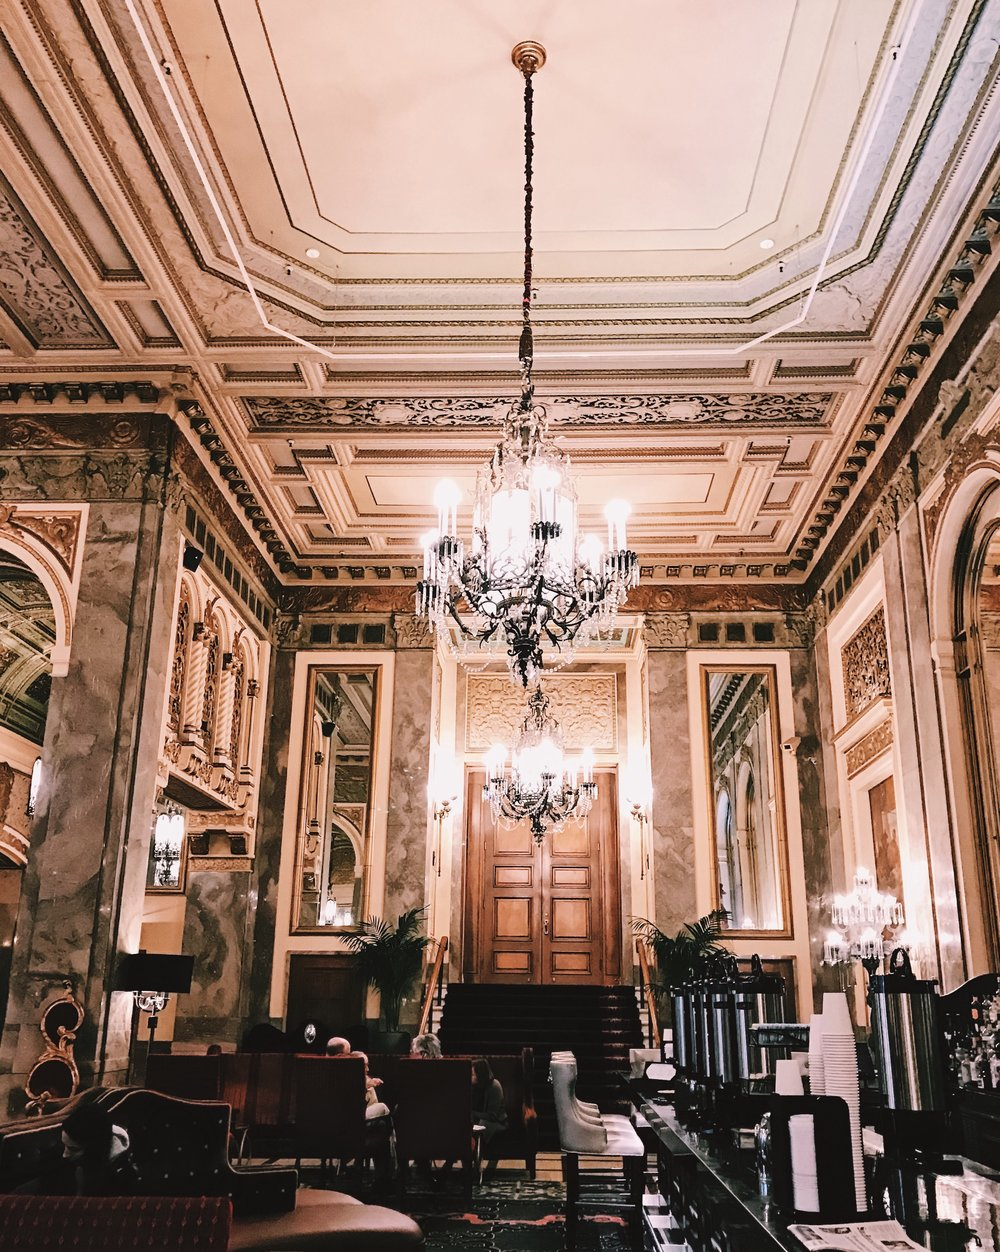 The lobby is oh-so grand and they offer free organic tea and coffee in the morning. #perks